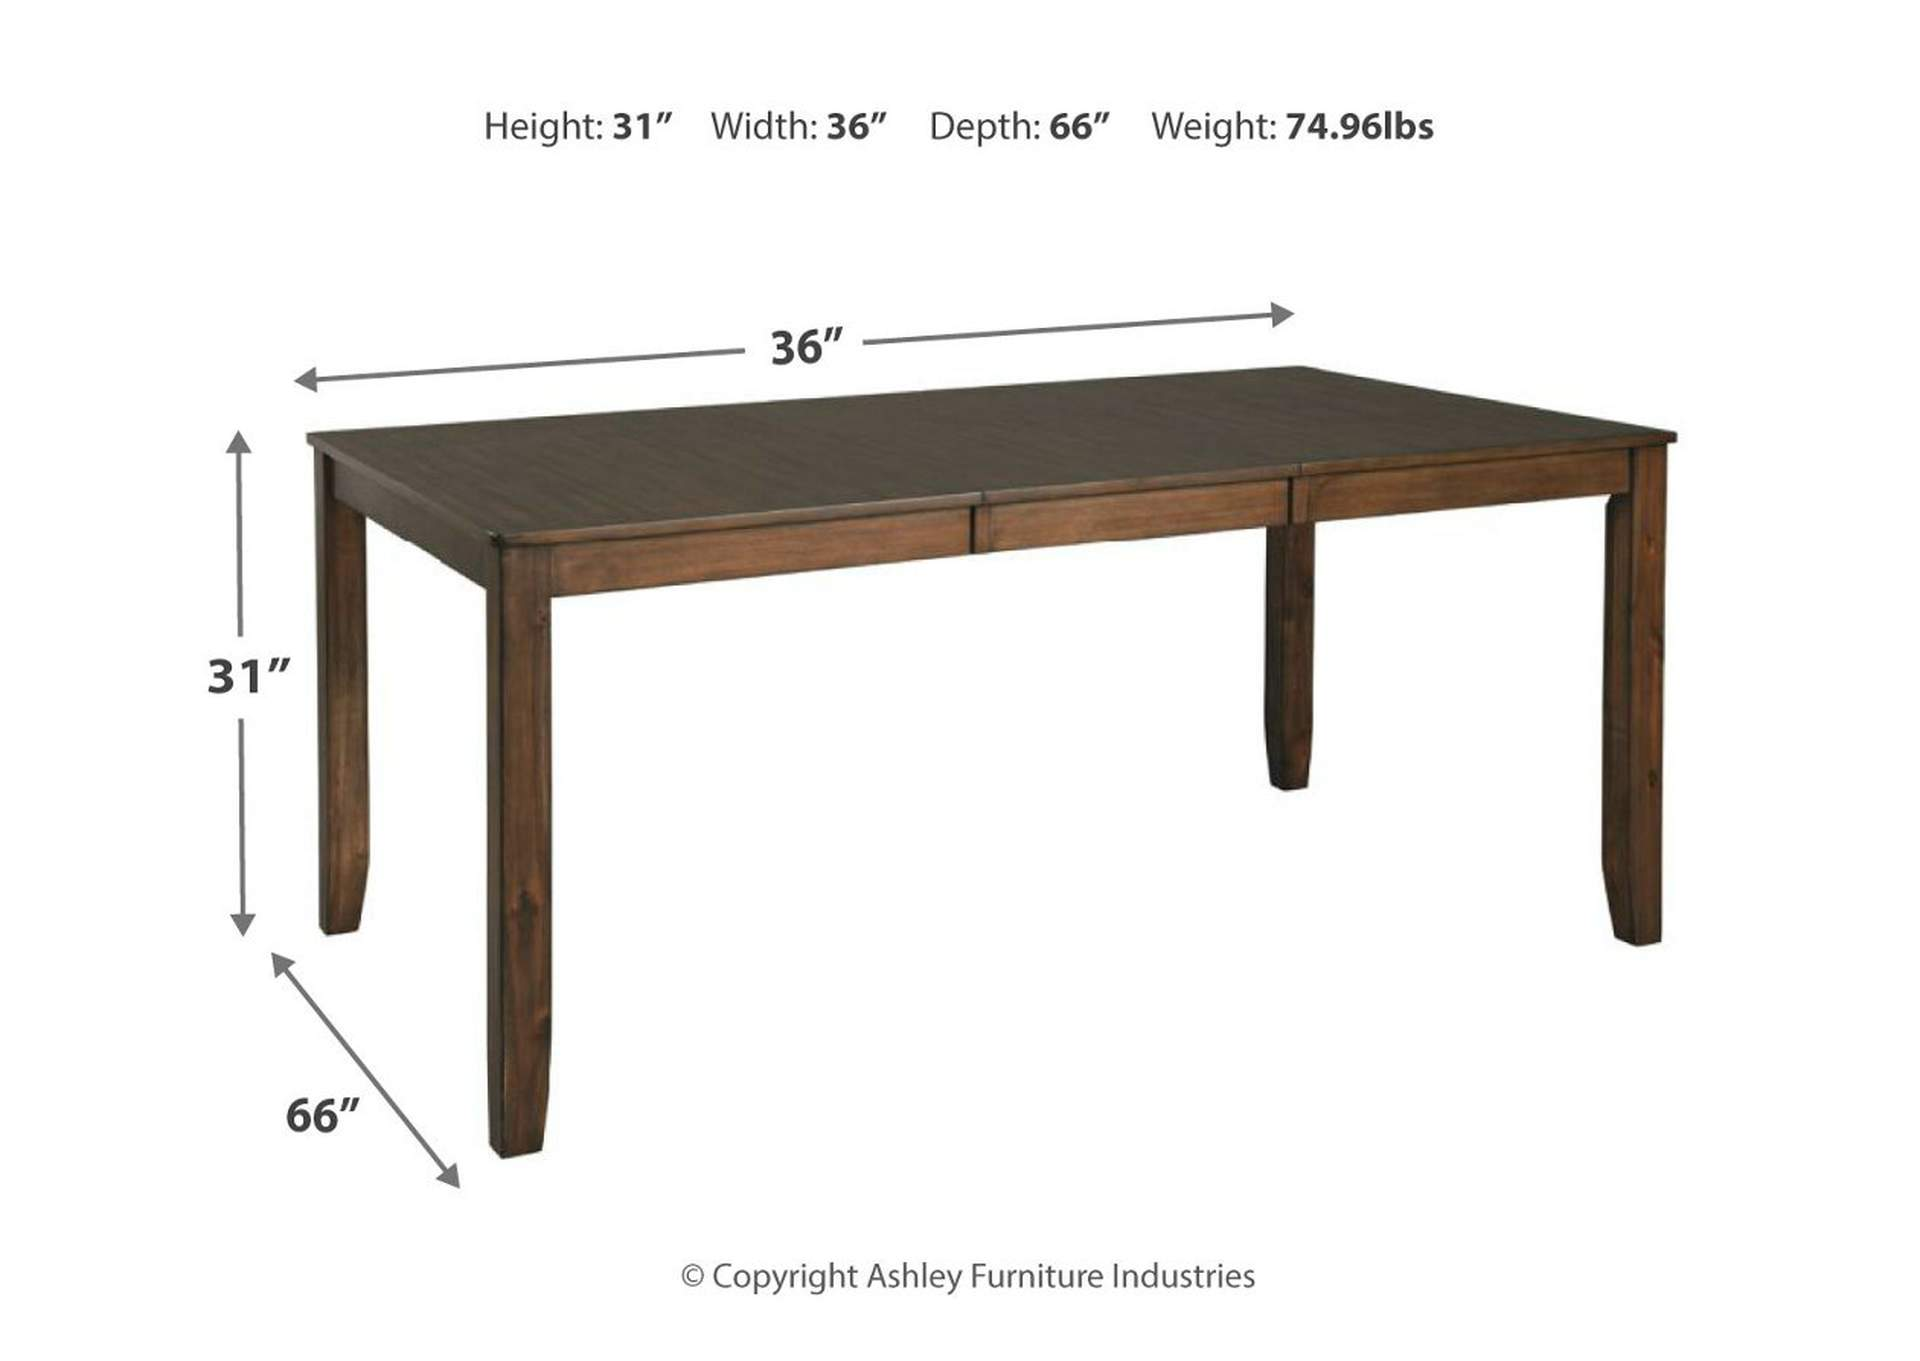 Drewing Dining Room Table,Benchcraft